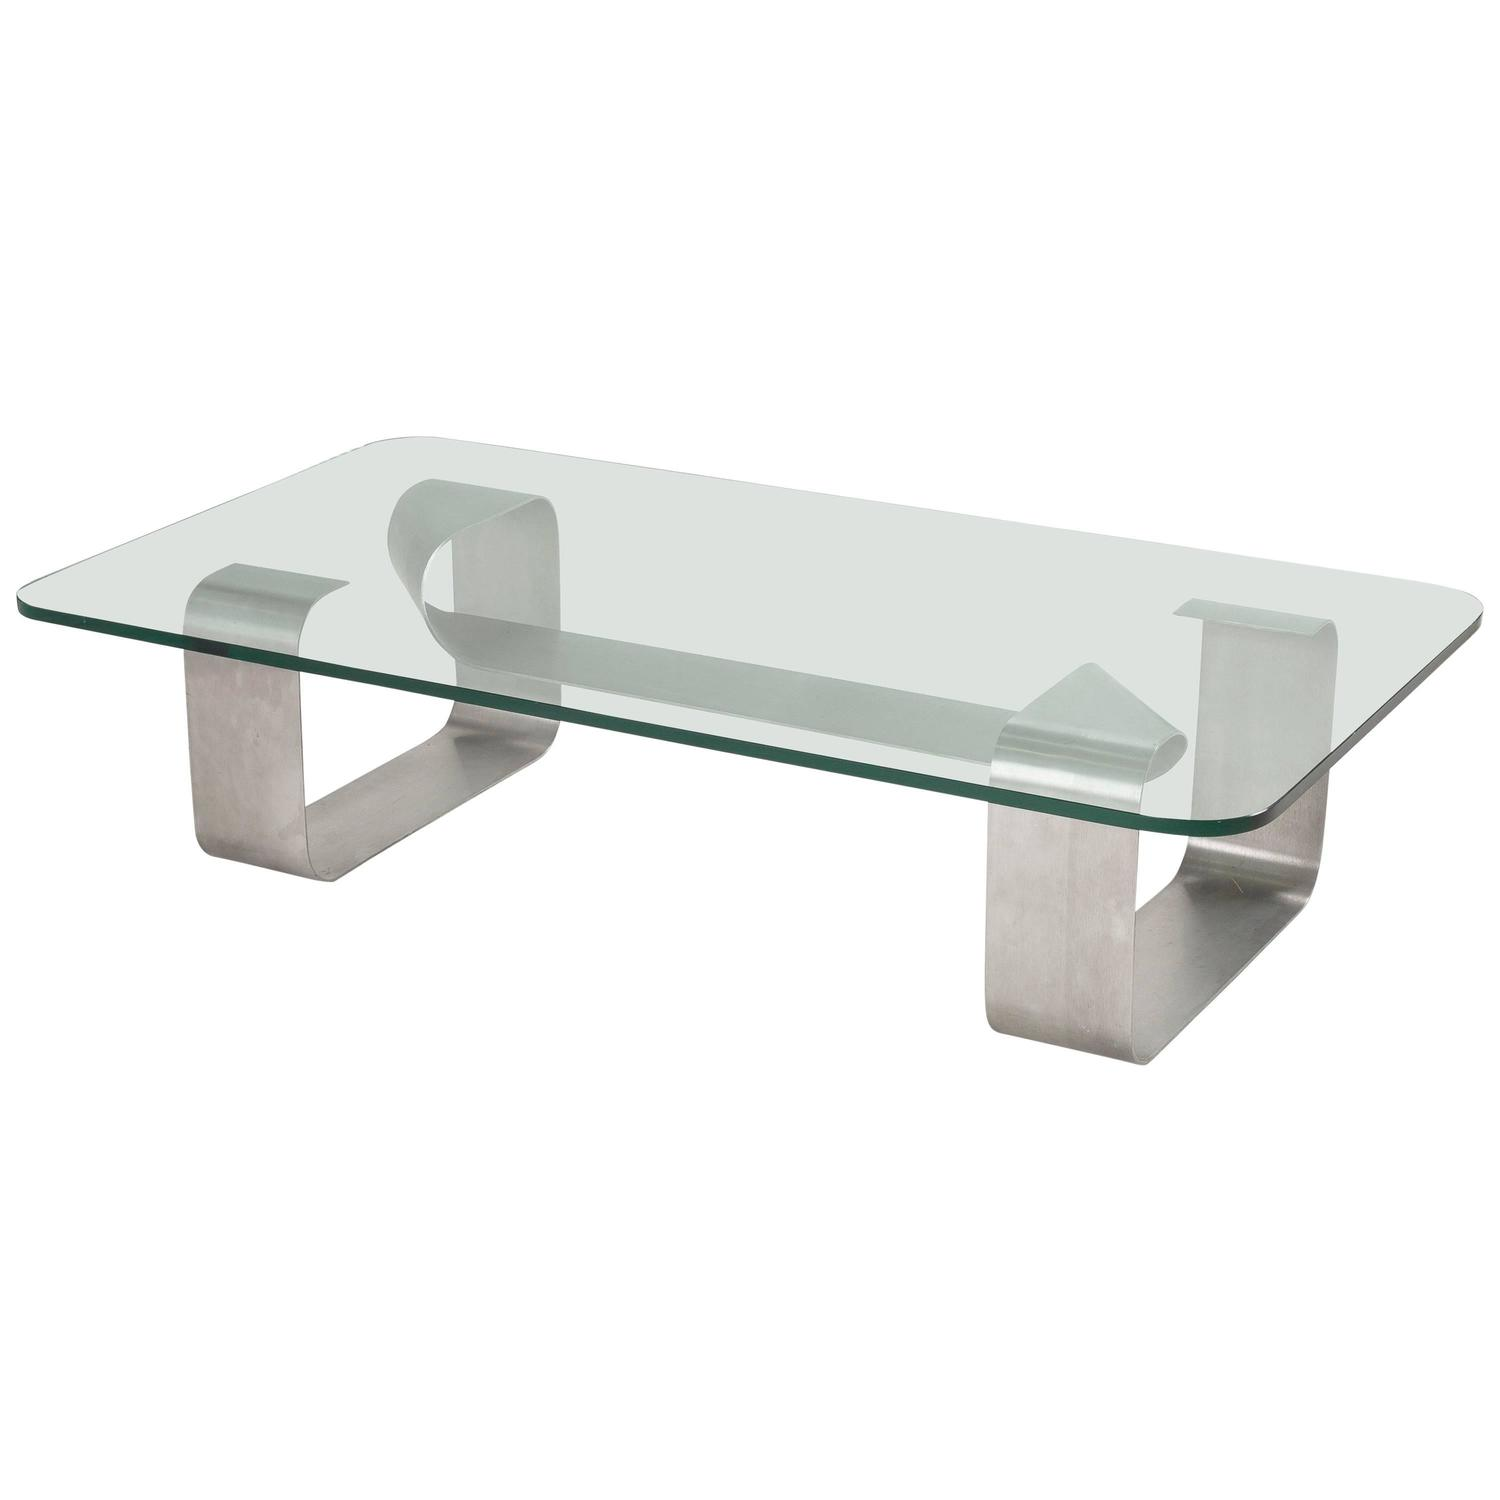 Steel Coffee Table With Glass Top By Paul Legeard For Dom At 1stdibs